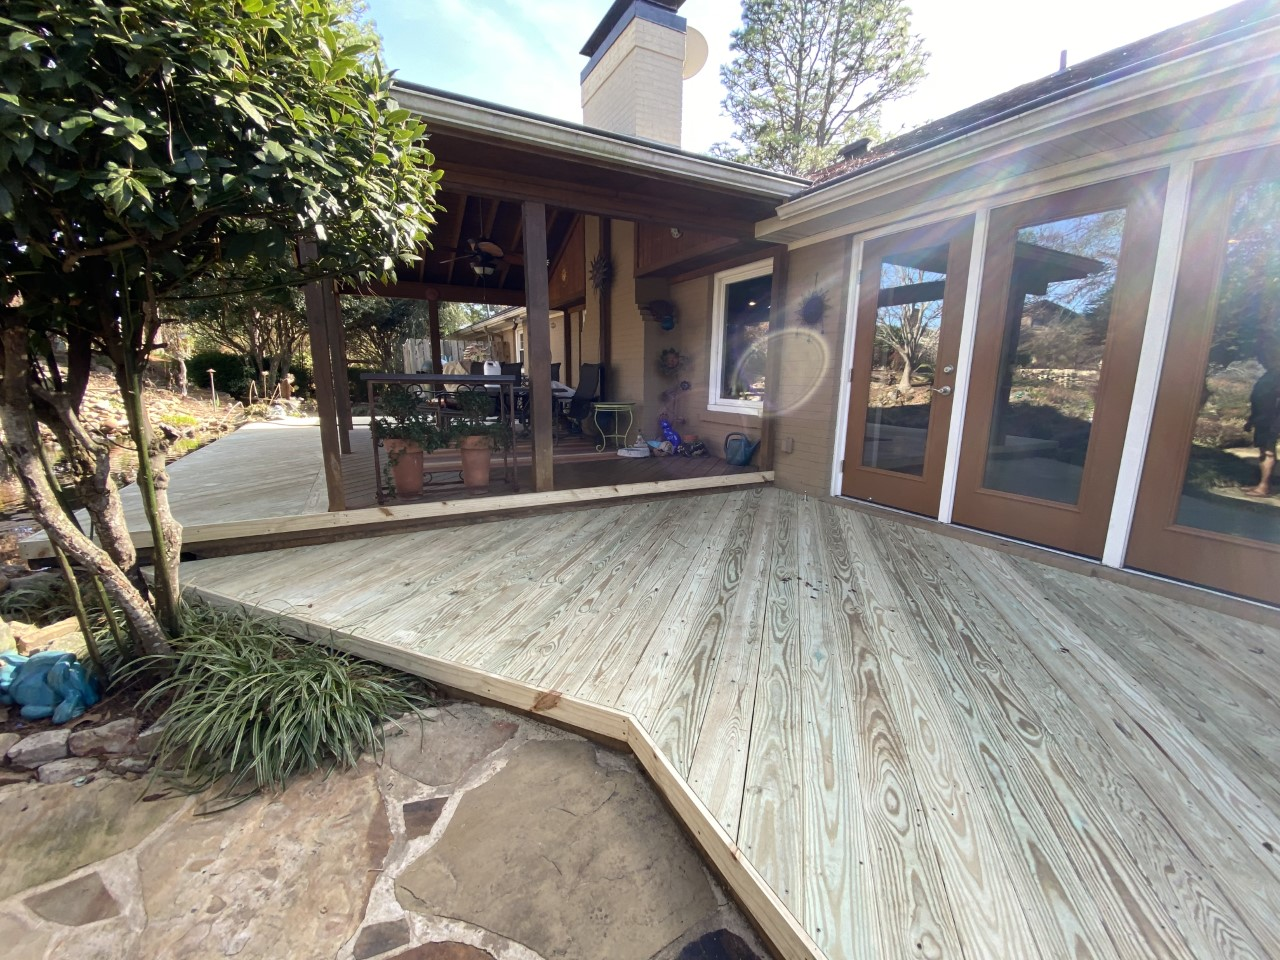 Act-now-to-get-the-outdoor-living-space-your-really-want-this-season